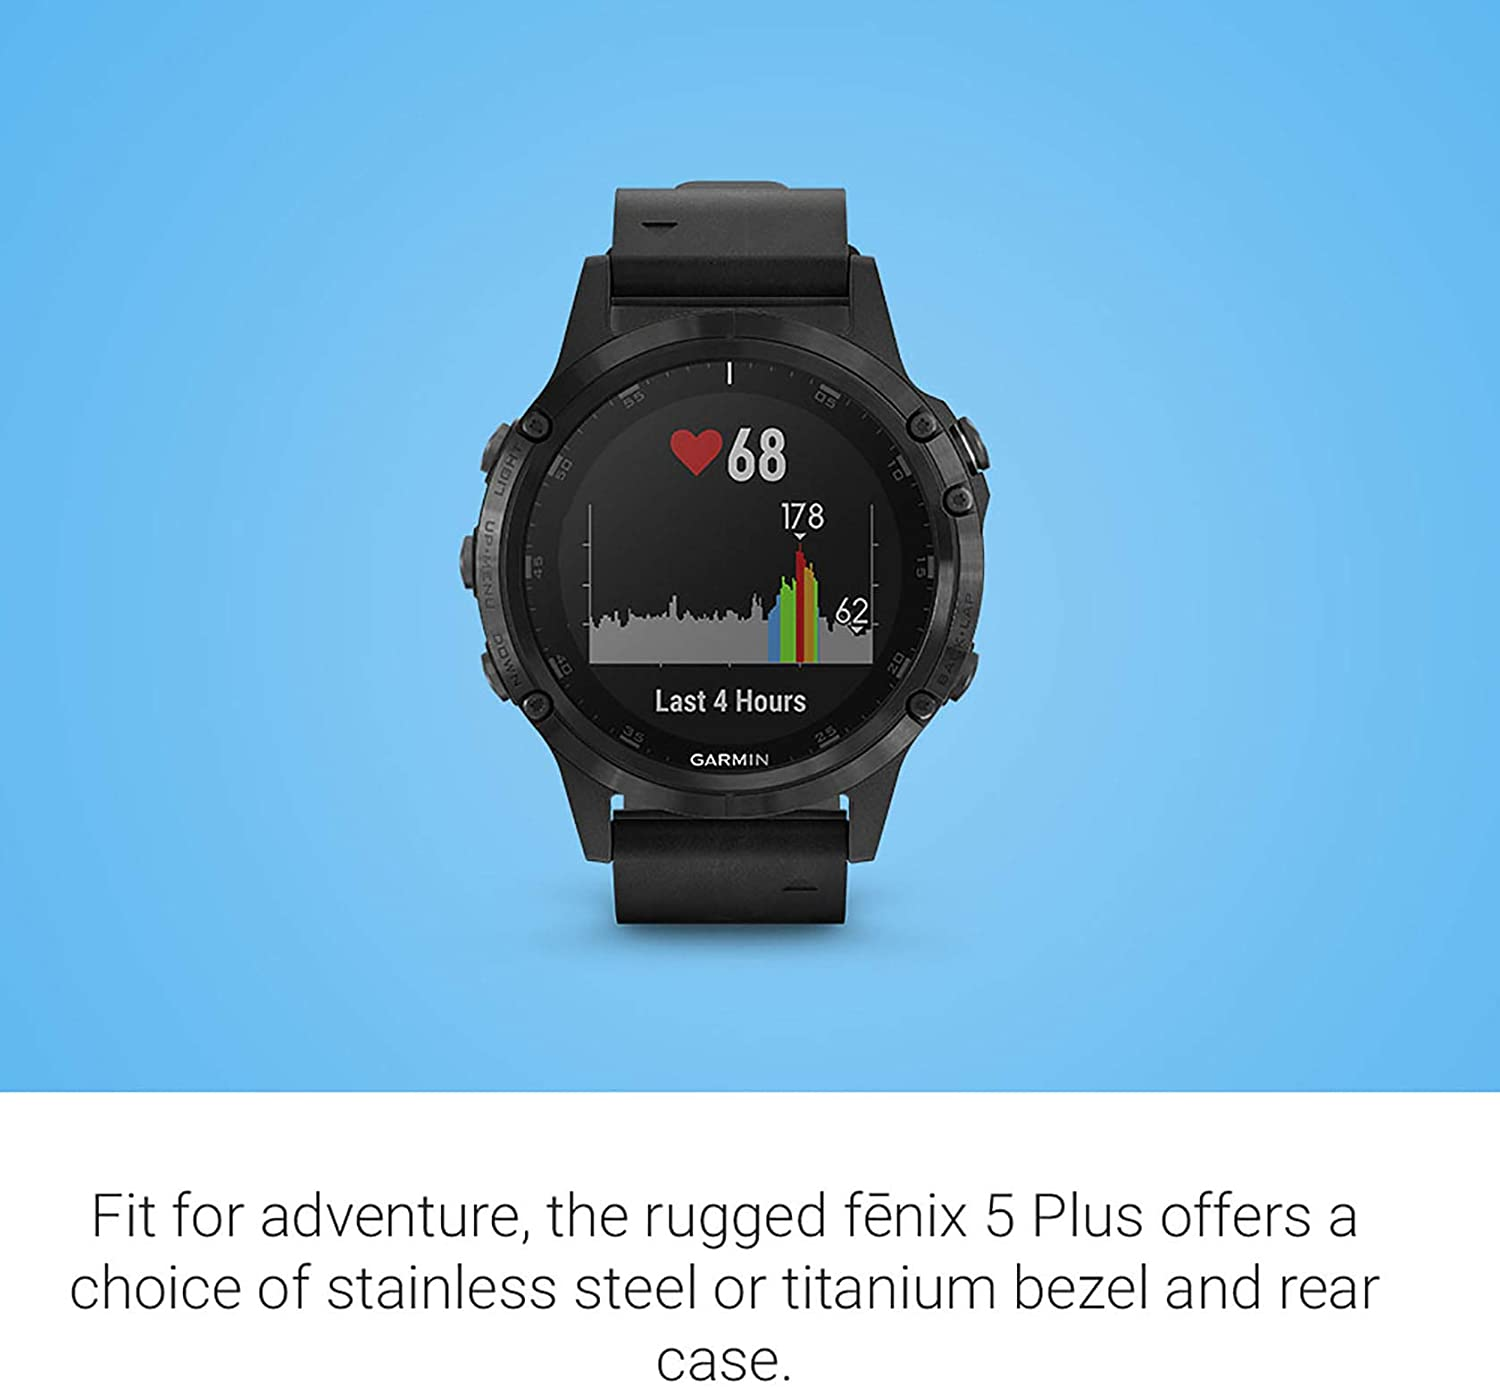 Features Color Topo Maps Black//Silver Premium Multisport GPS Smartwatch Heart Rate Monitoring Garmin fēnix 5 Plus Music and Pay Europe